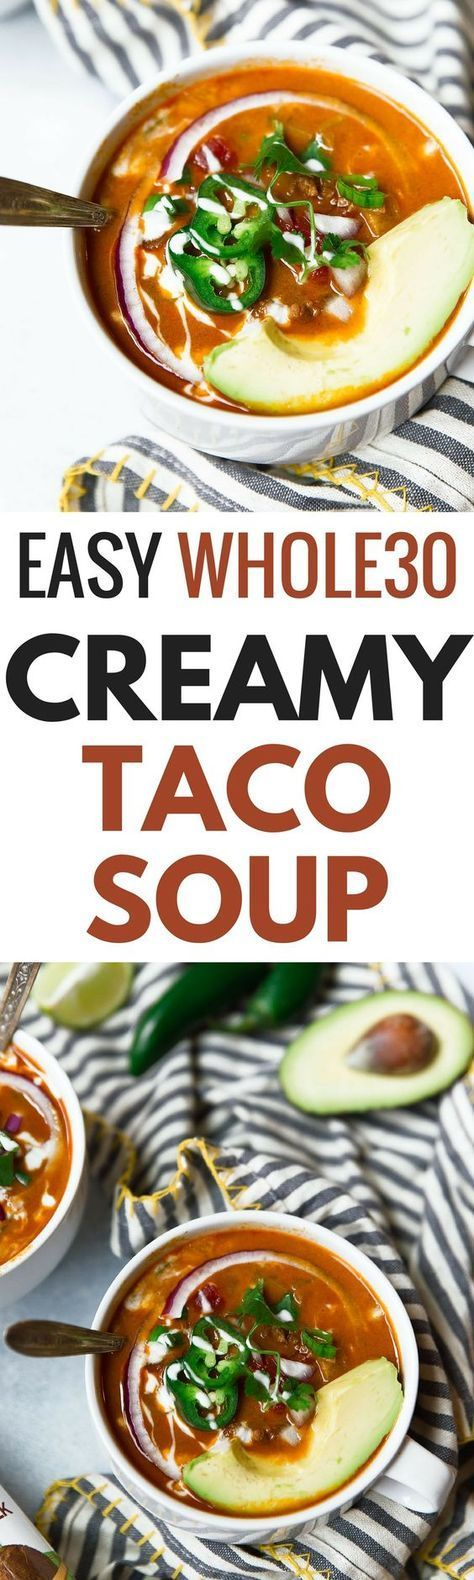 Whole30 Creamy Taco Soup